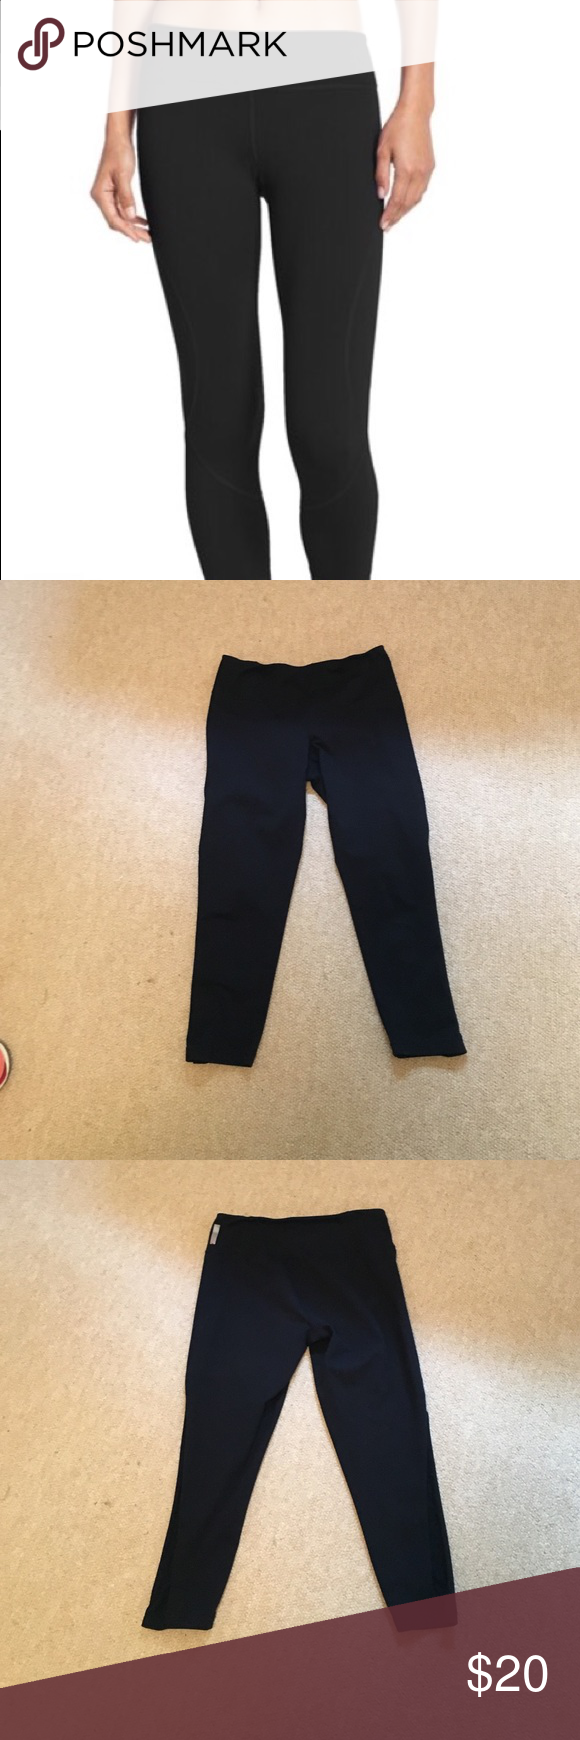 Zella live in leggings, Capri. Zella live leggings, Capri. Good but worn condition, no defects. Zella Pants Leggings